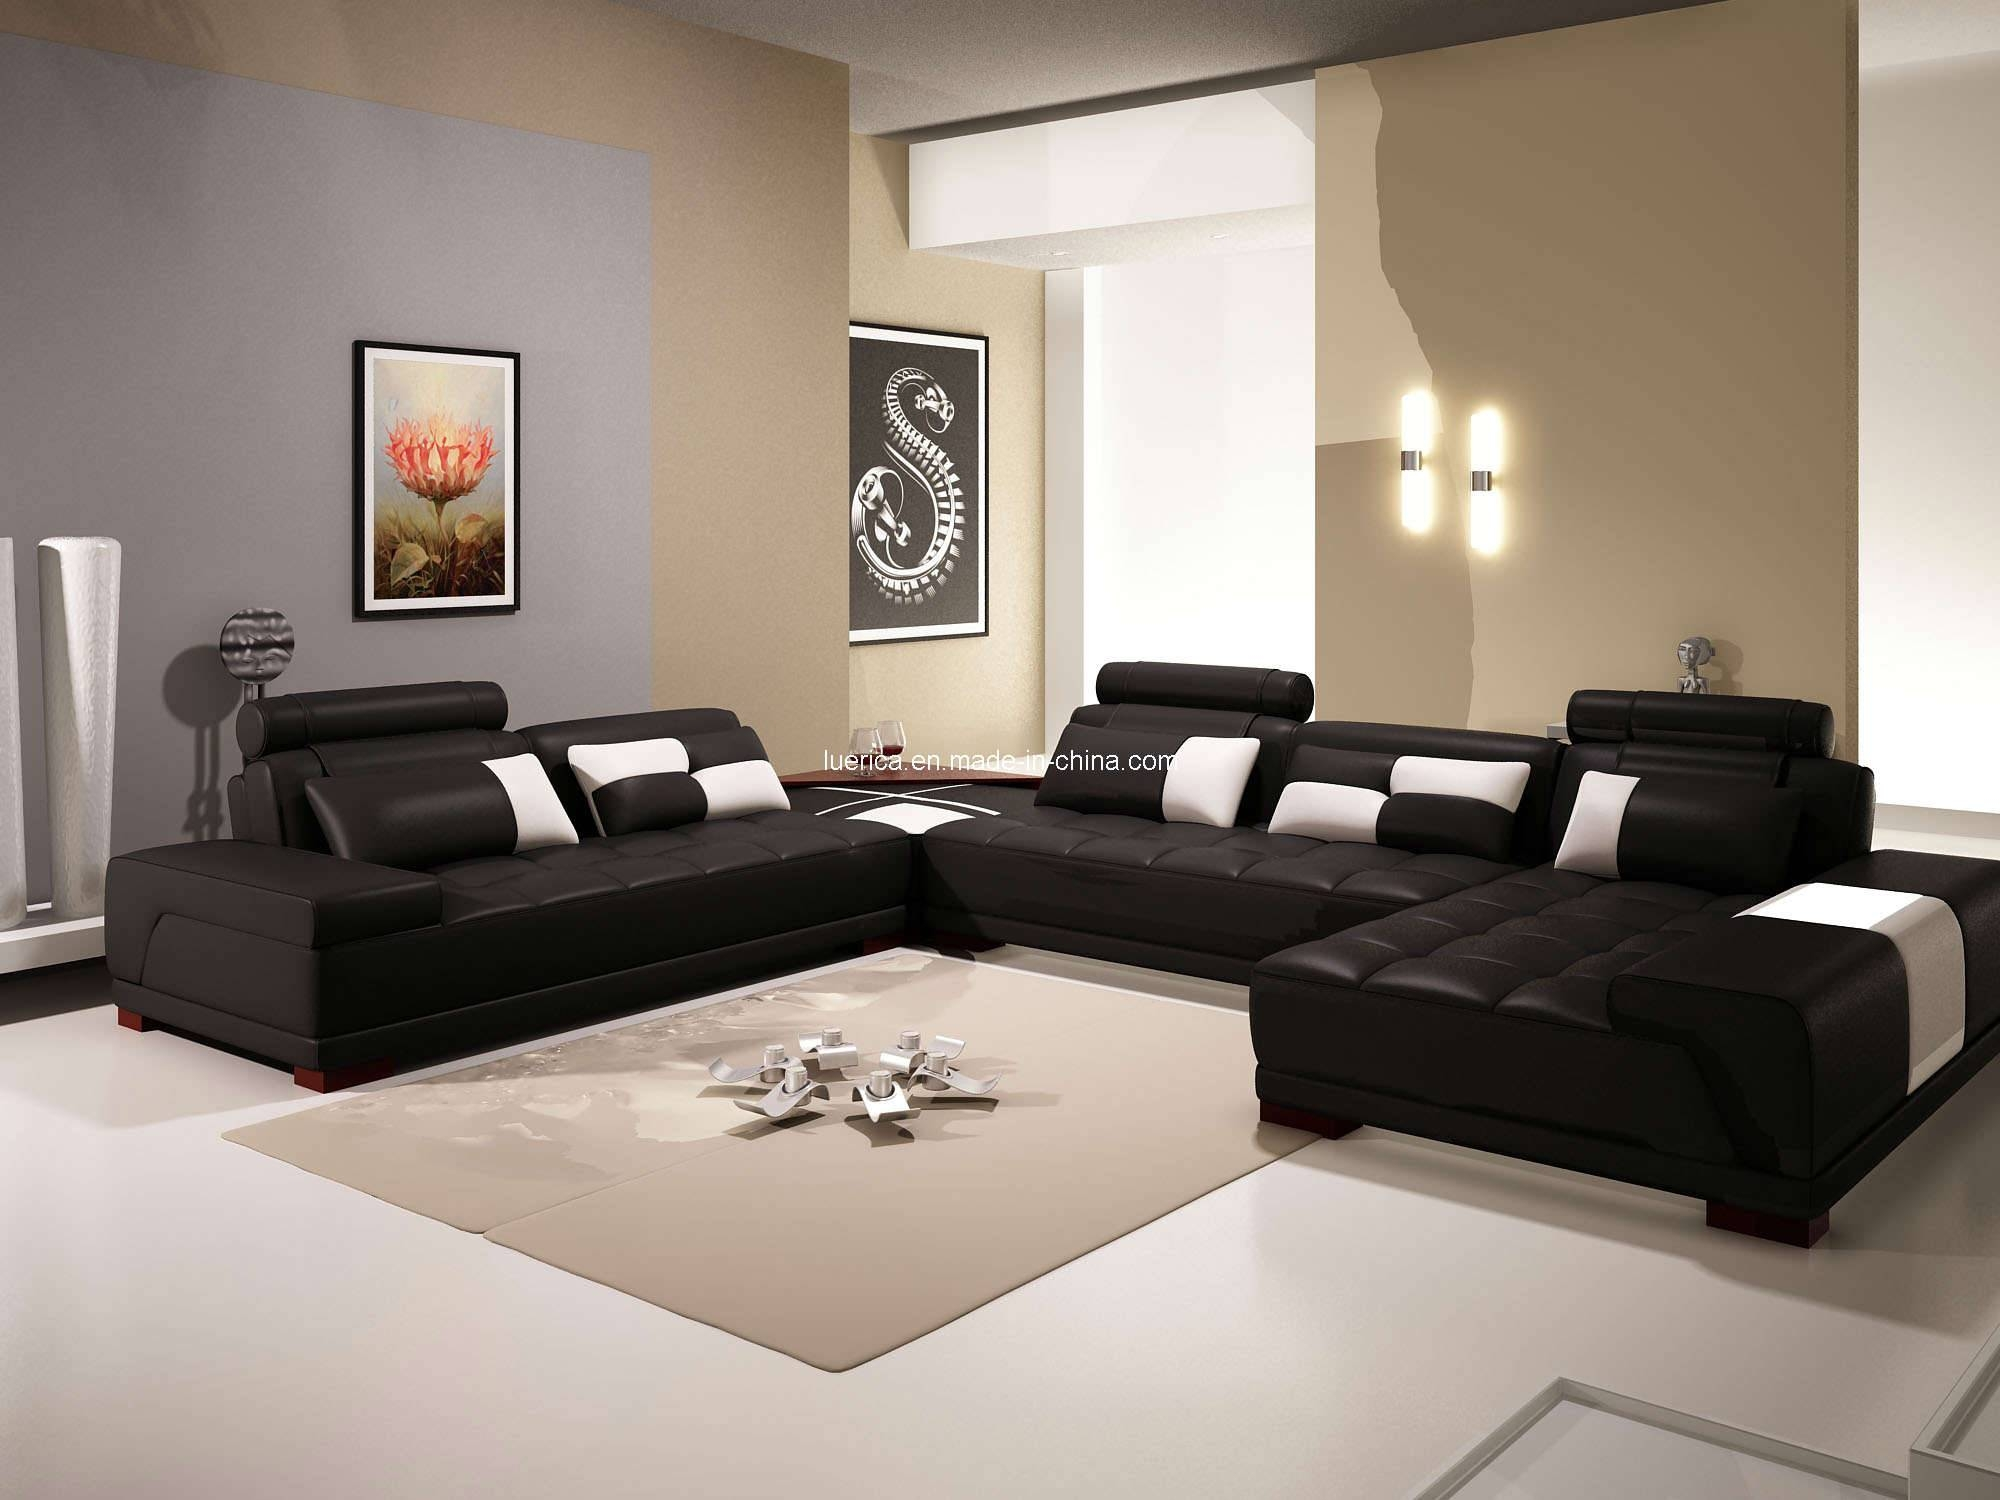 Furniture: Beautiful Sectional Sofas Cheap For Living Room In Black And White Sectional Sofa (View 16 of 30)